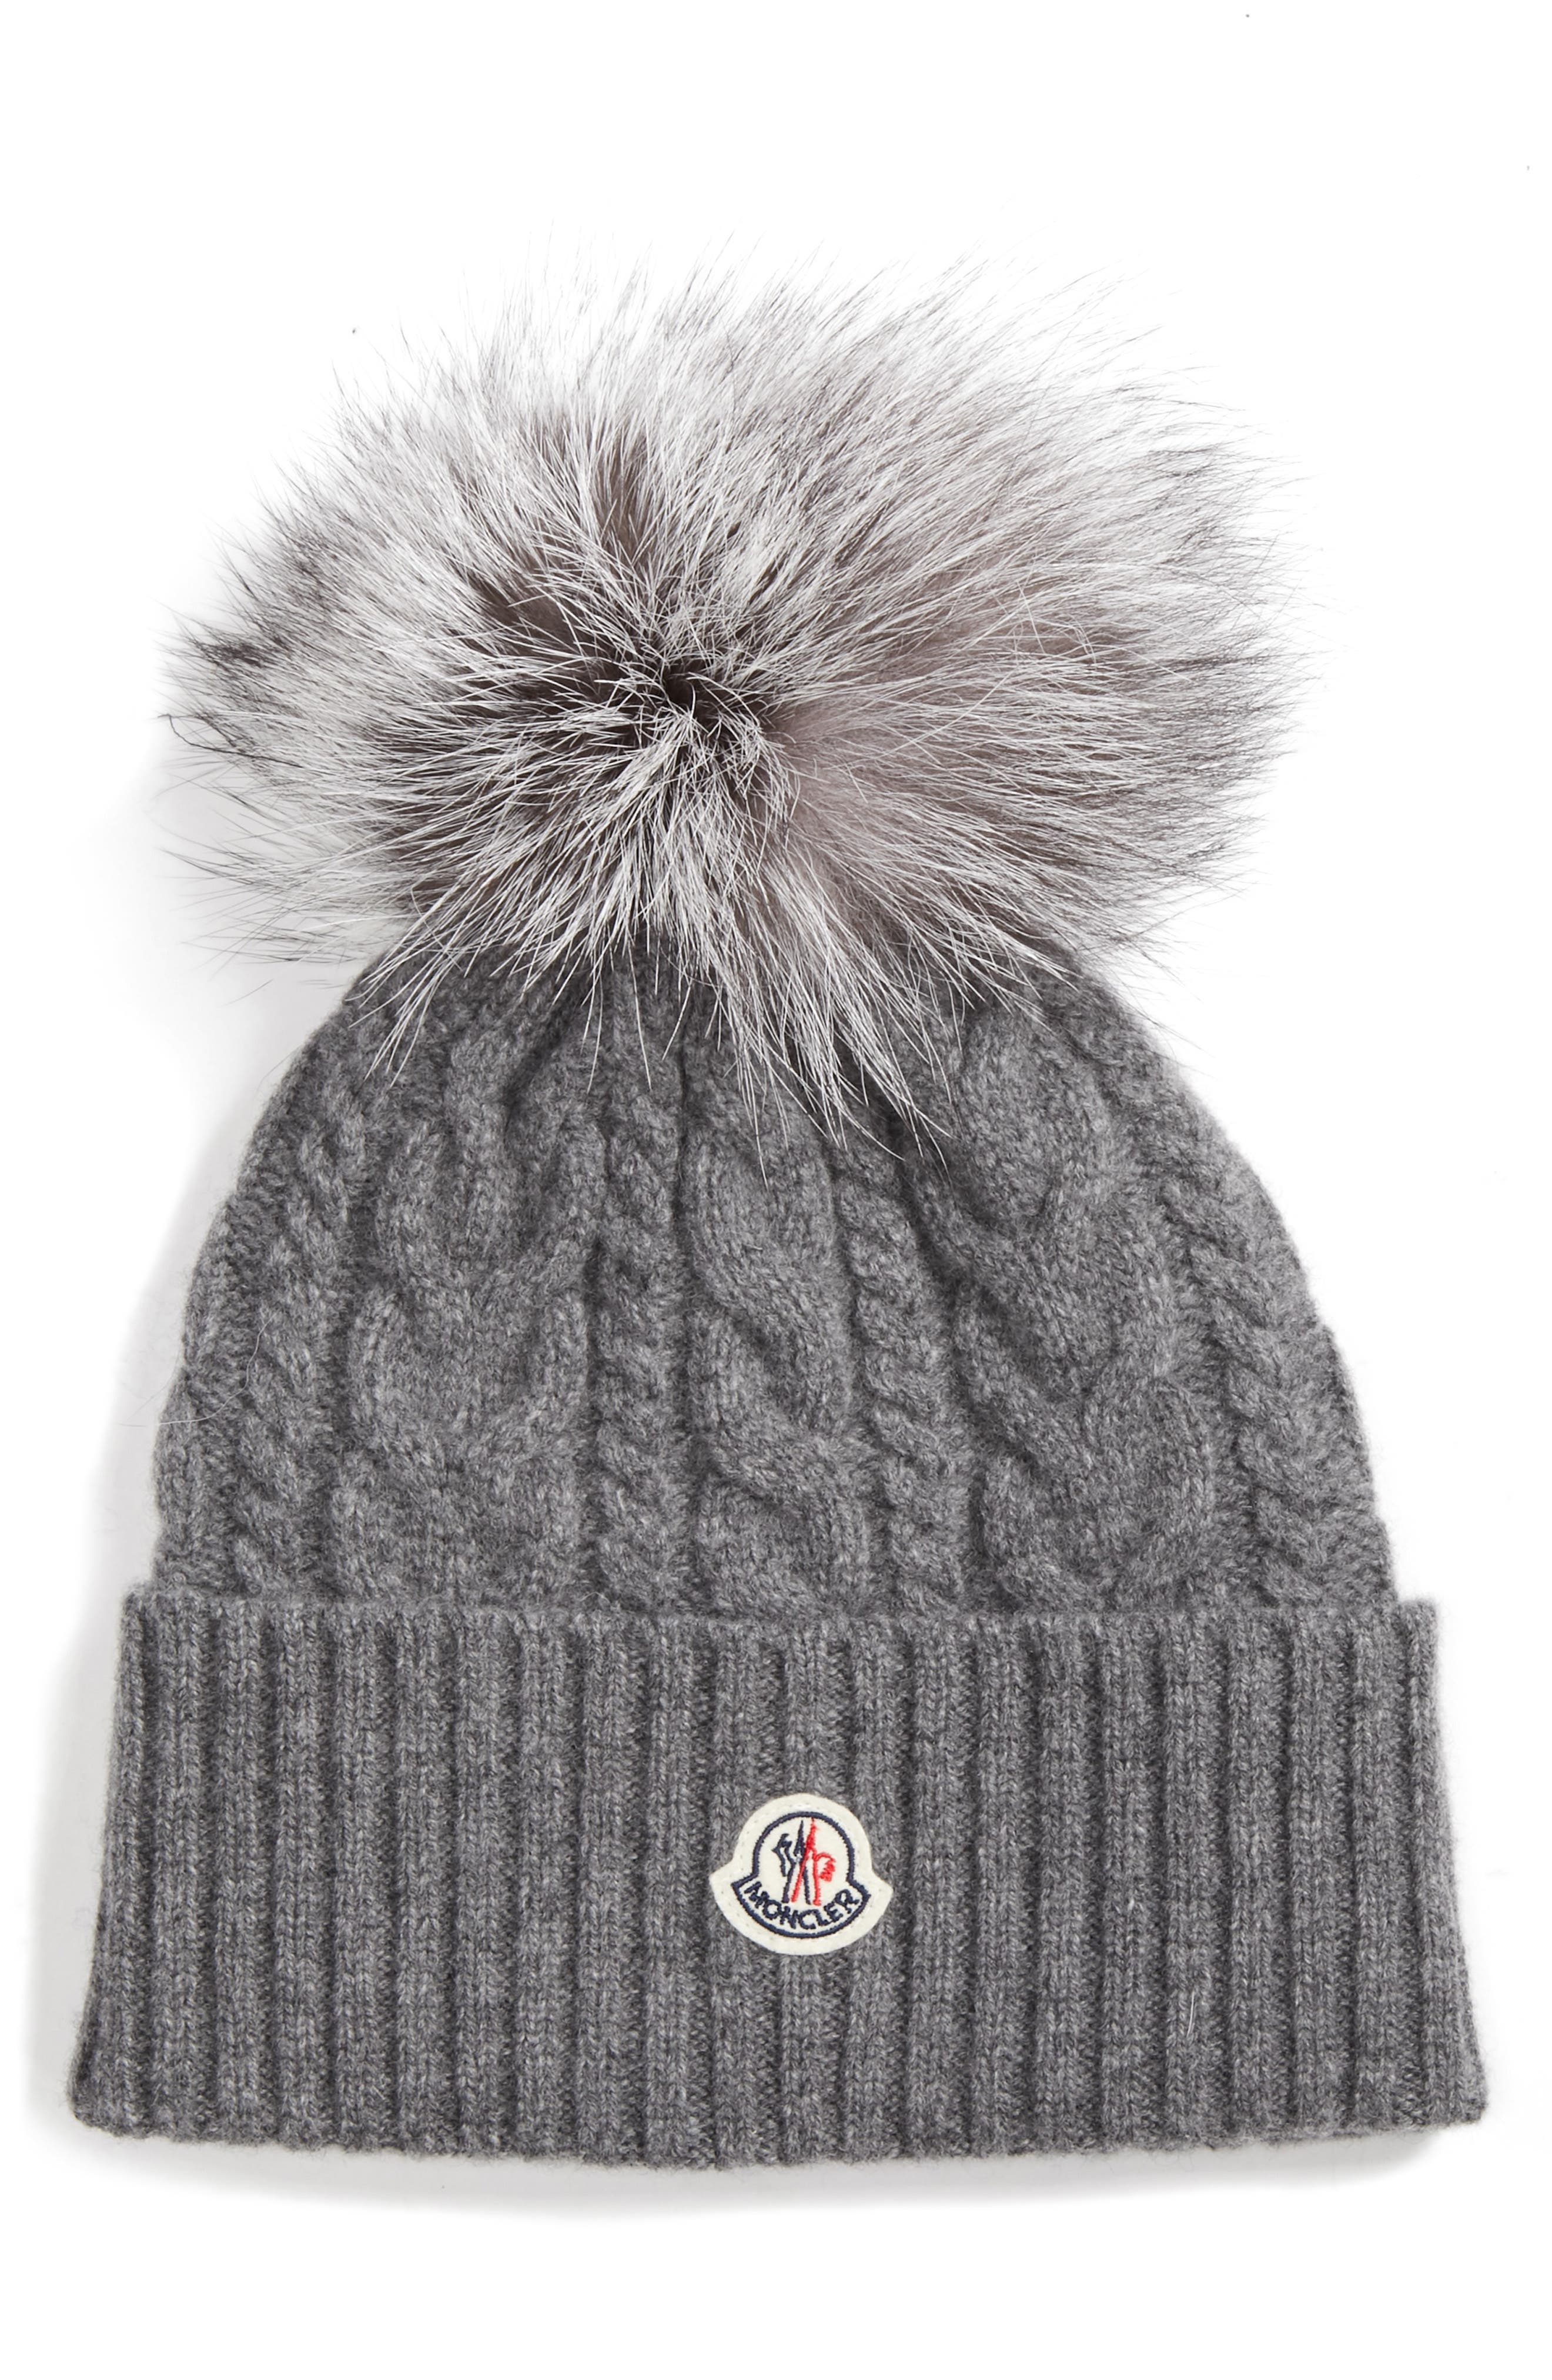 423d123c7 Beanies for Women | Nordstrom